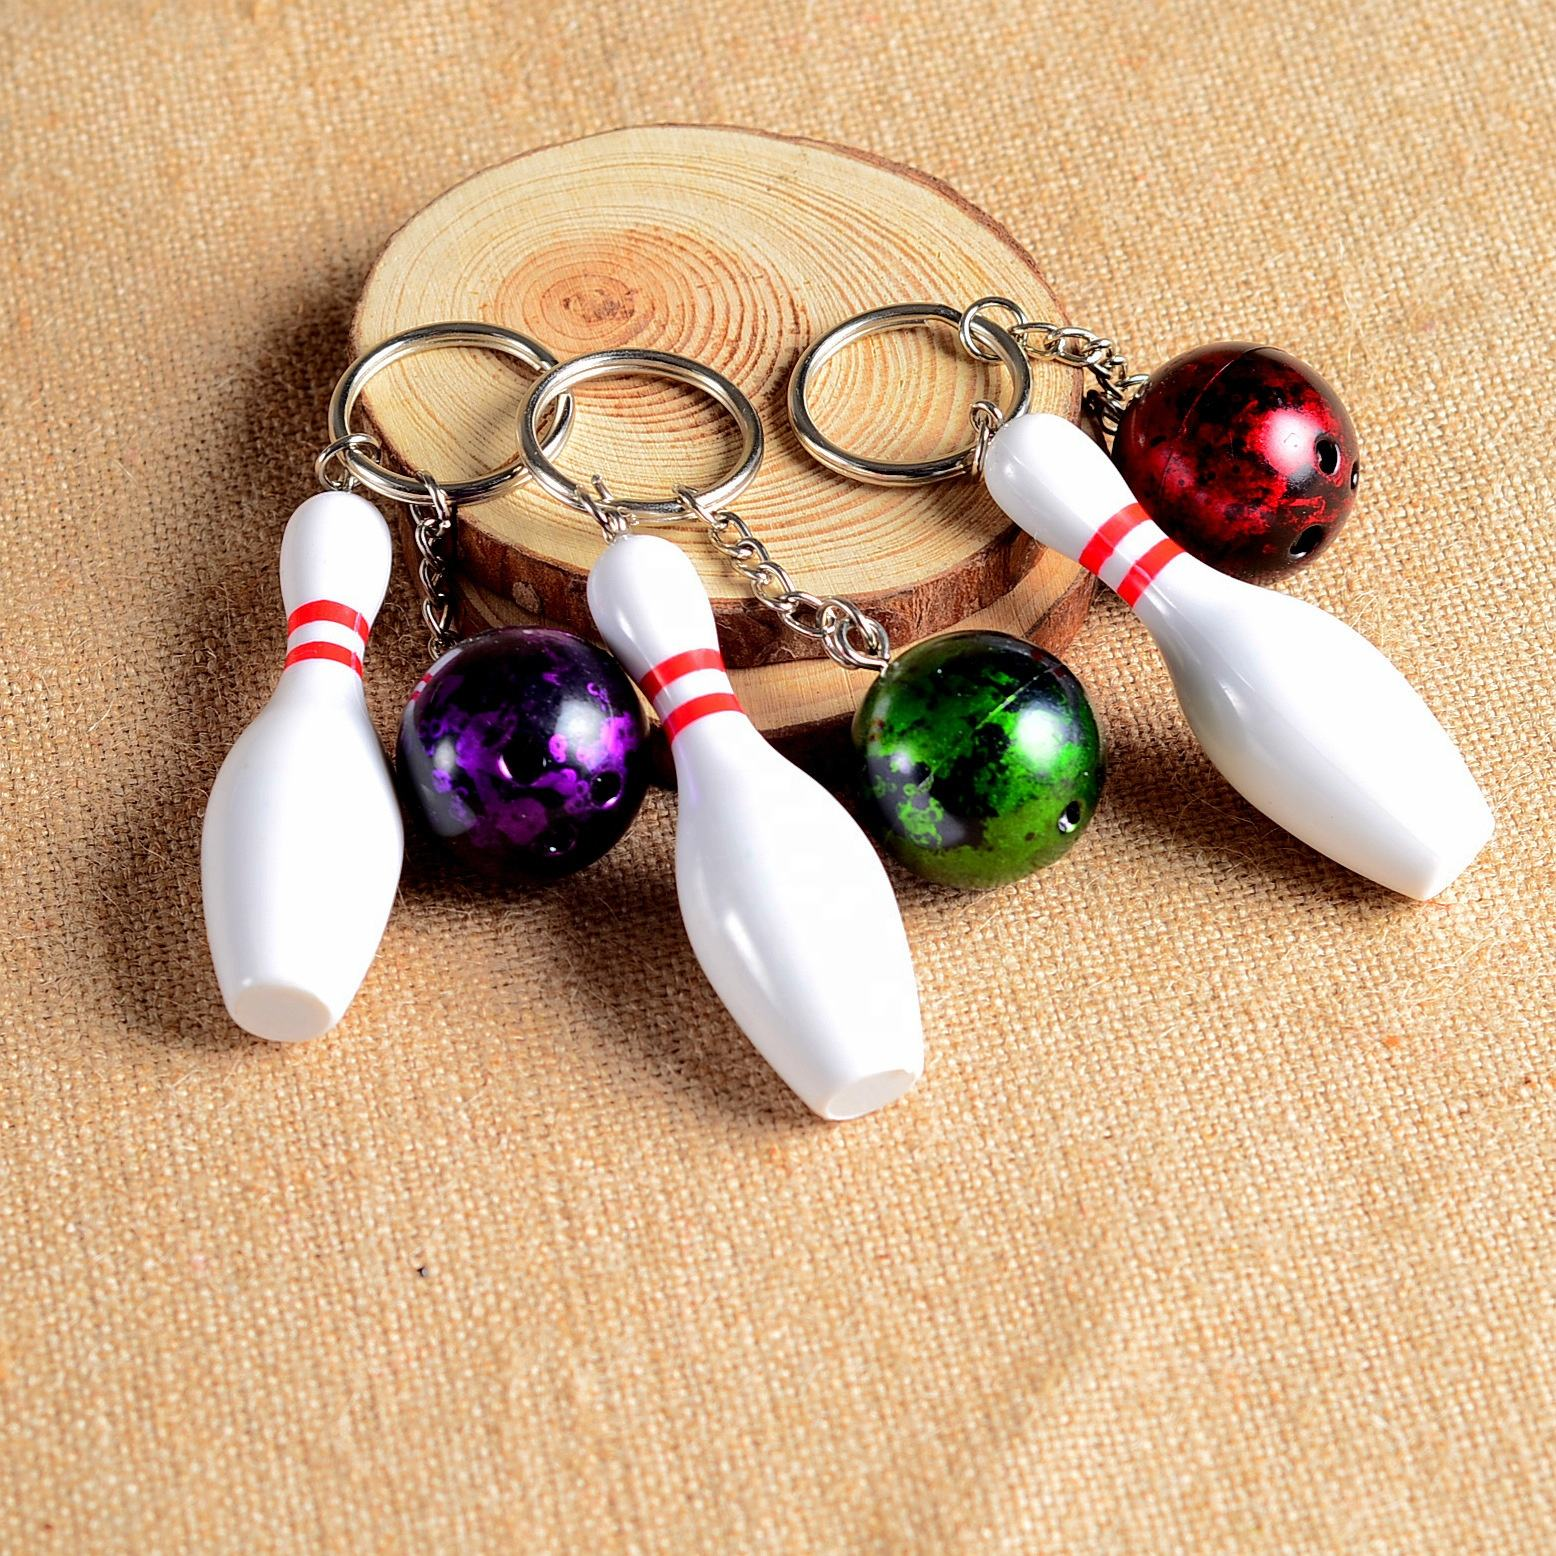 Newest Bowling Pin Keychains Sports Simulation Mini Bowling Ball Keyring Key Holder for Gifts/Bowling Party Favors